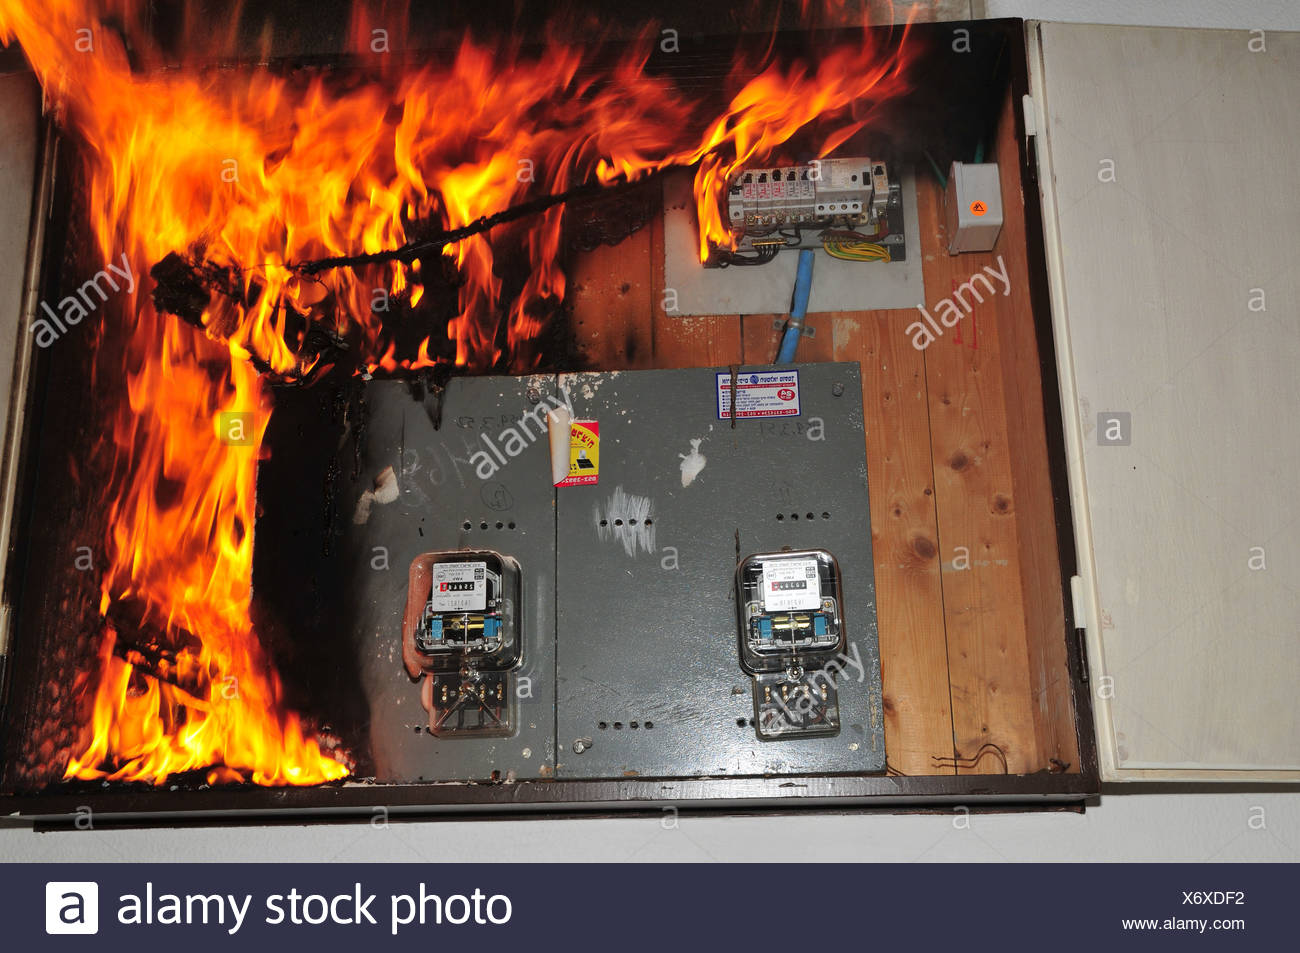 hight resolution of a fire broke out in a household electrical fuse box flames consumed the board photographed